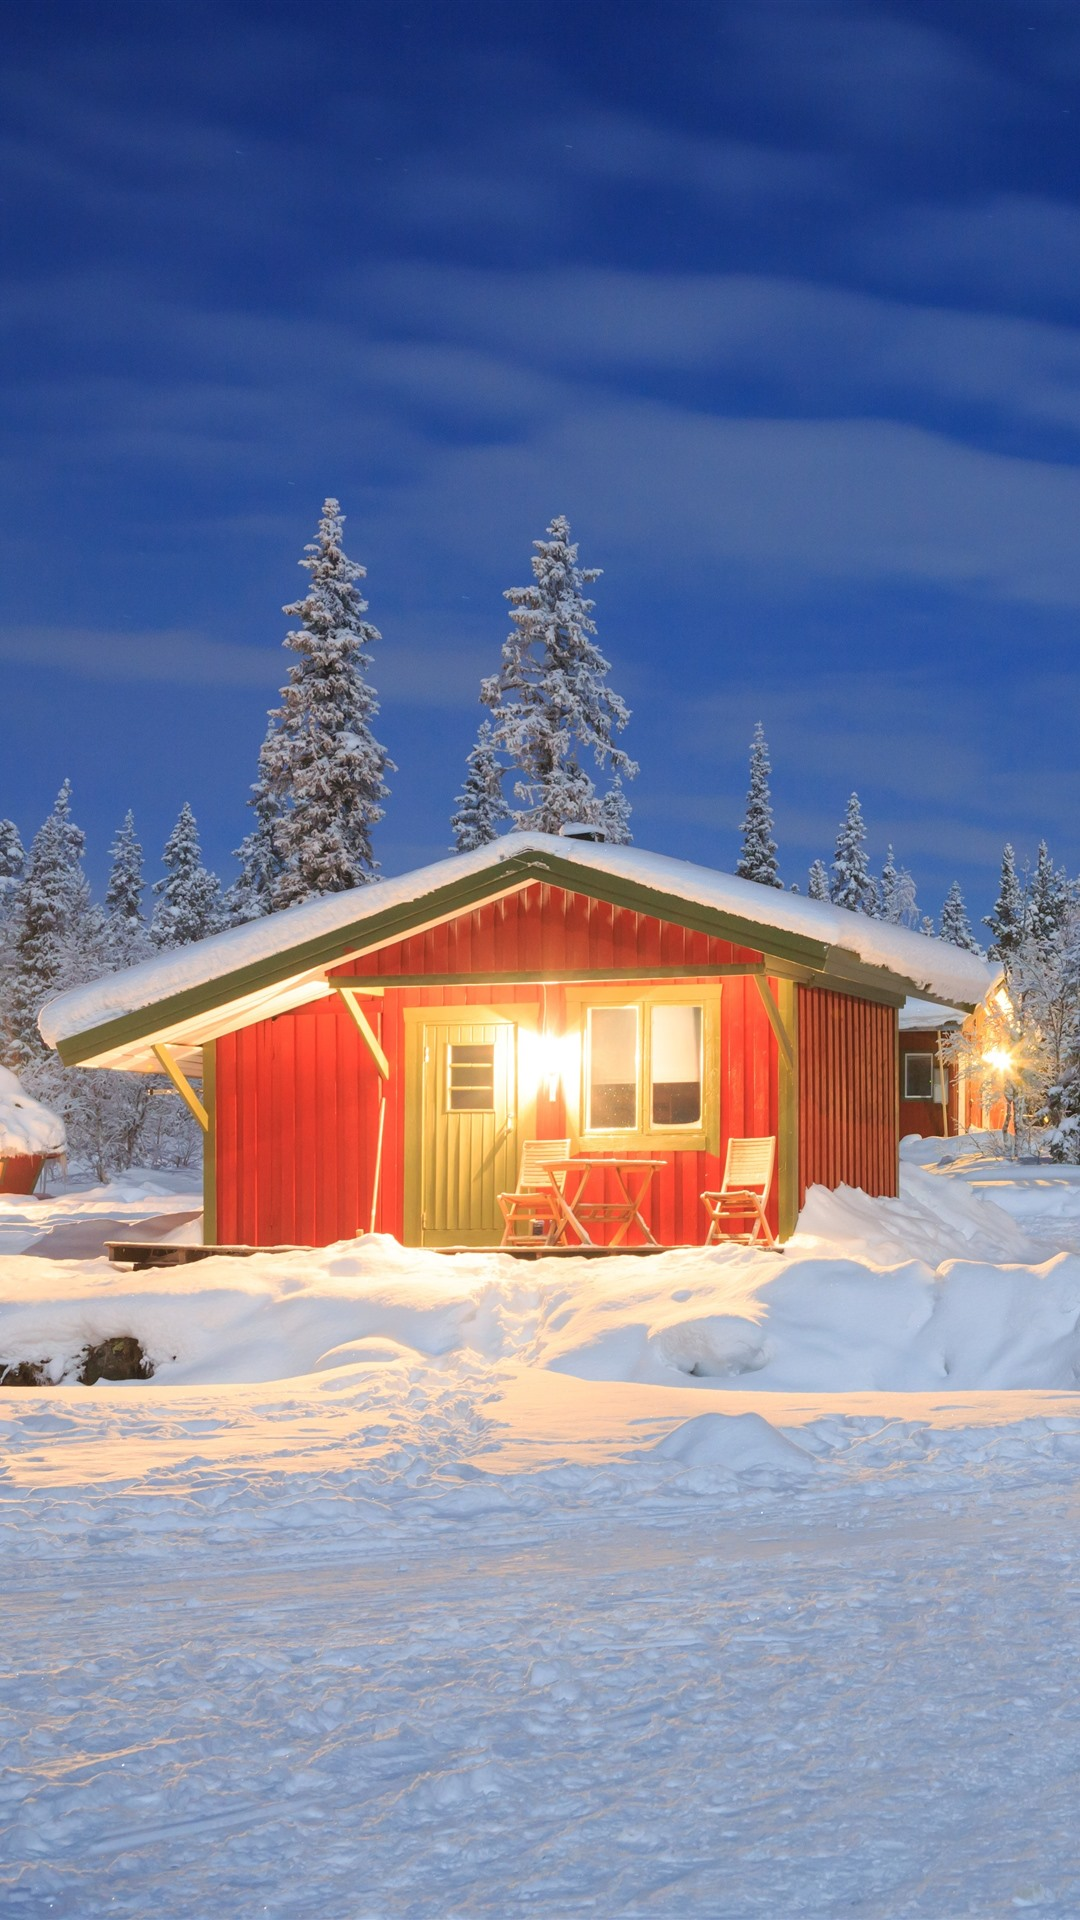 Winter Snow Houses Trees Lights 1242x2688 Iphone 11 Pro Xs Max Wallpaper Background Picture Image